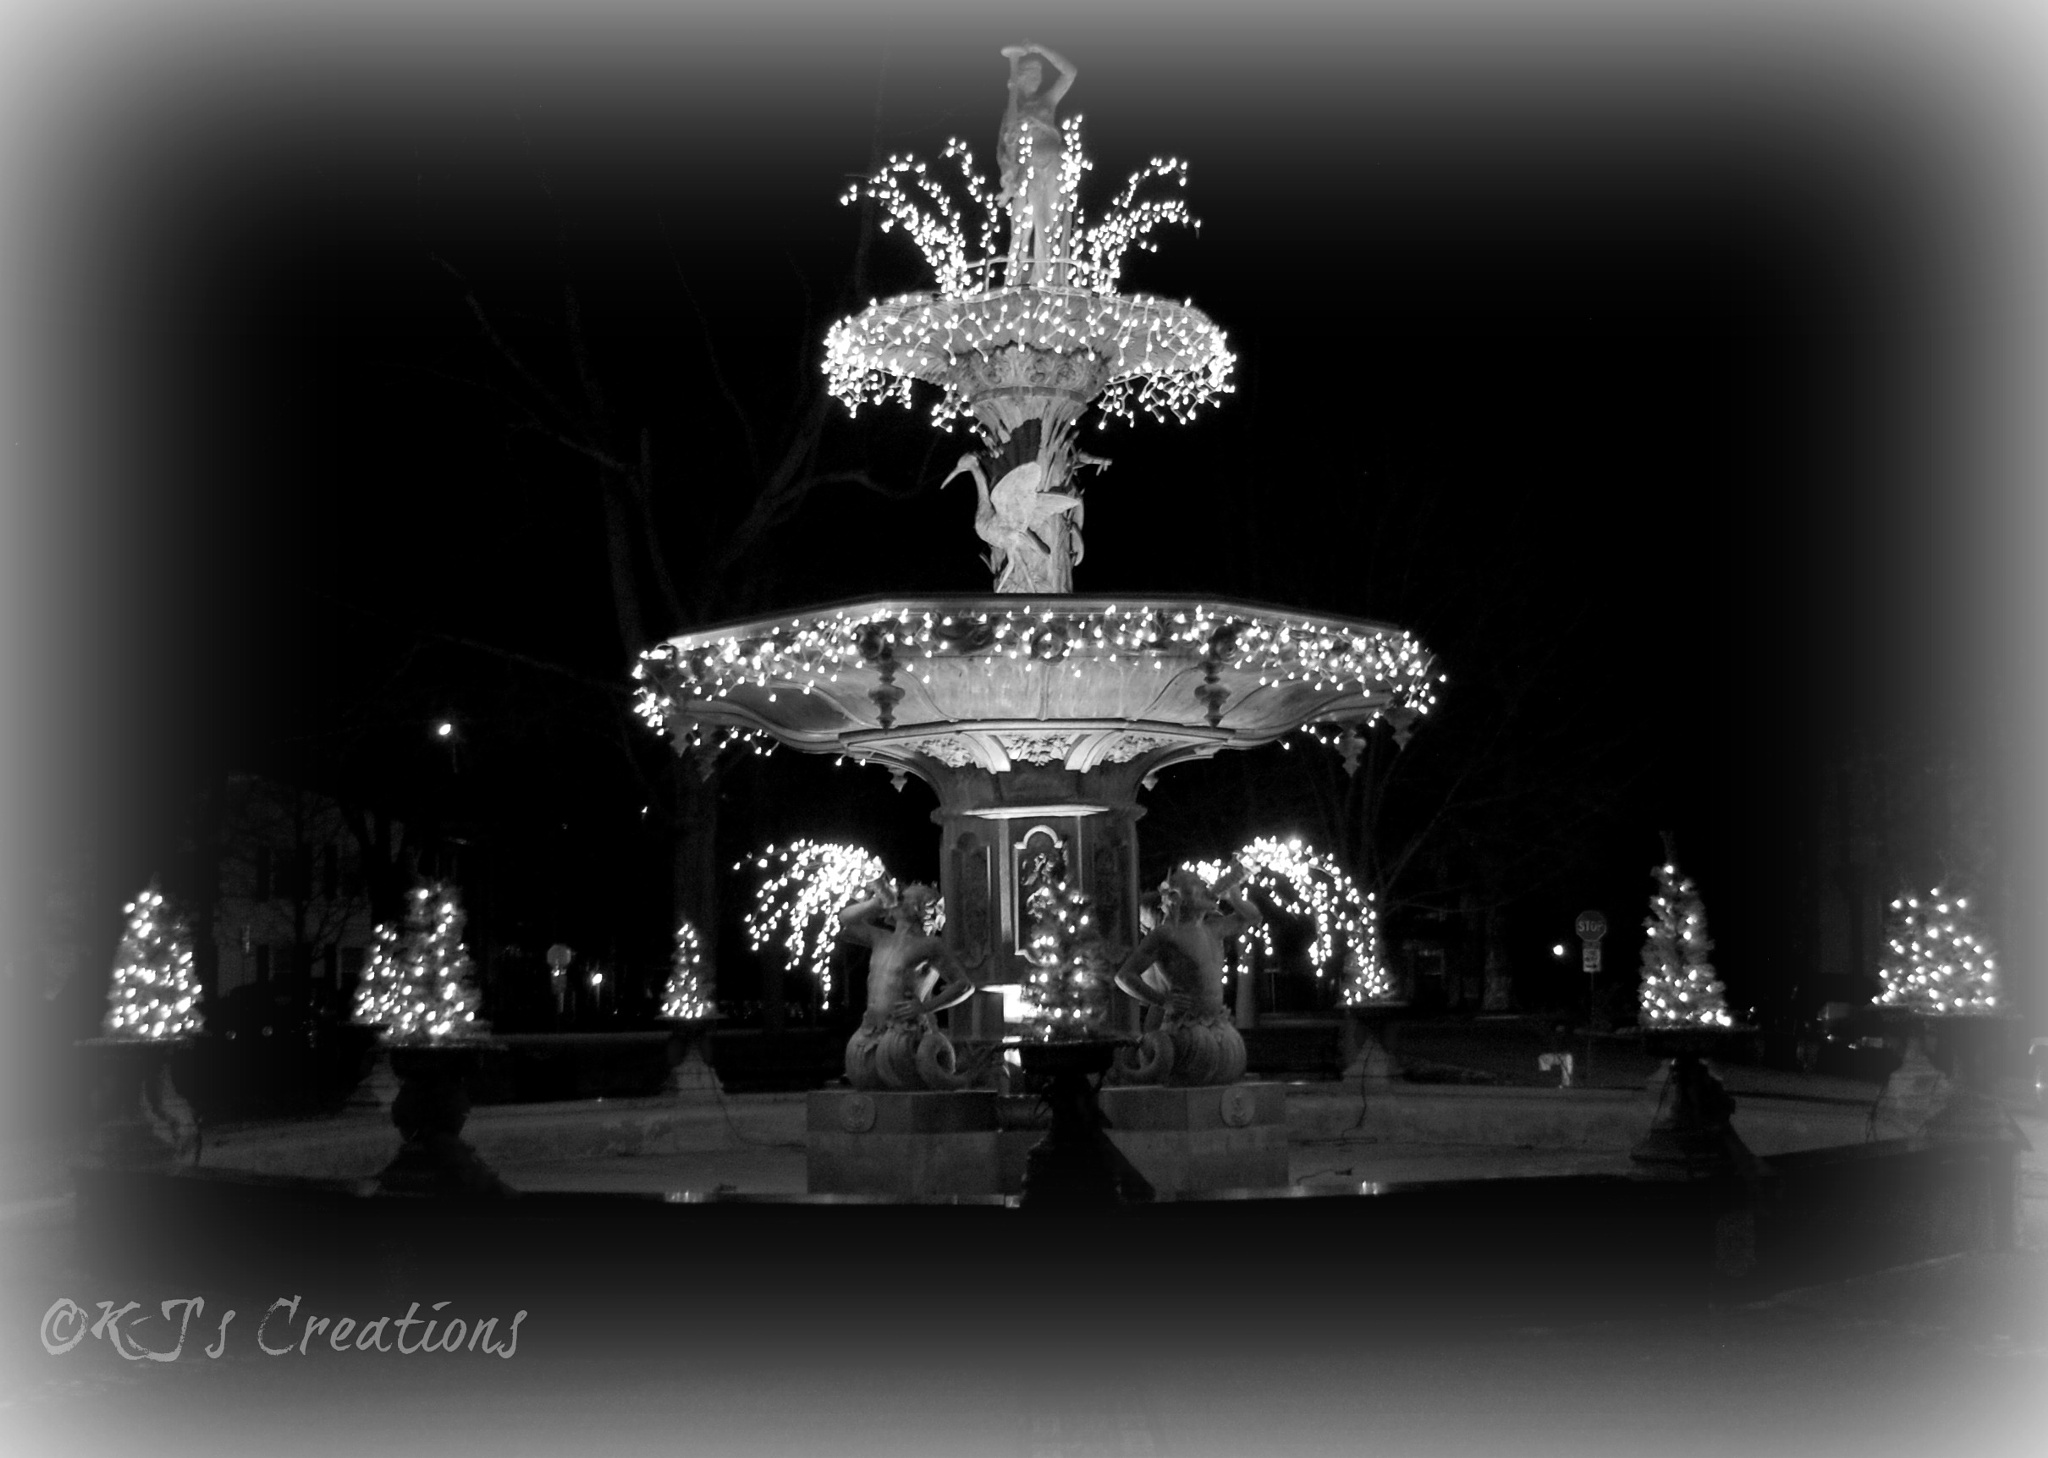 Fountain in full-b/w by kristin j clevenger